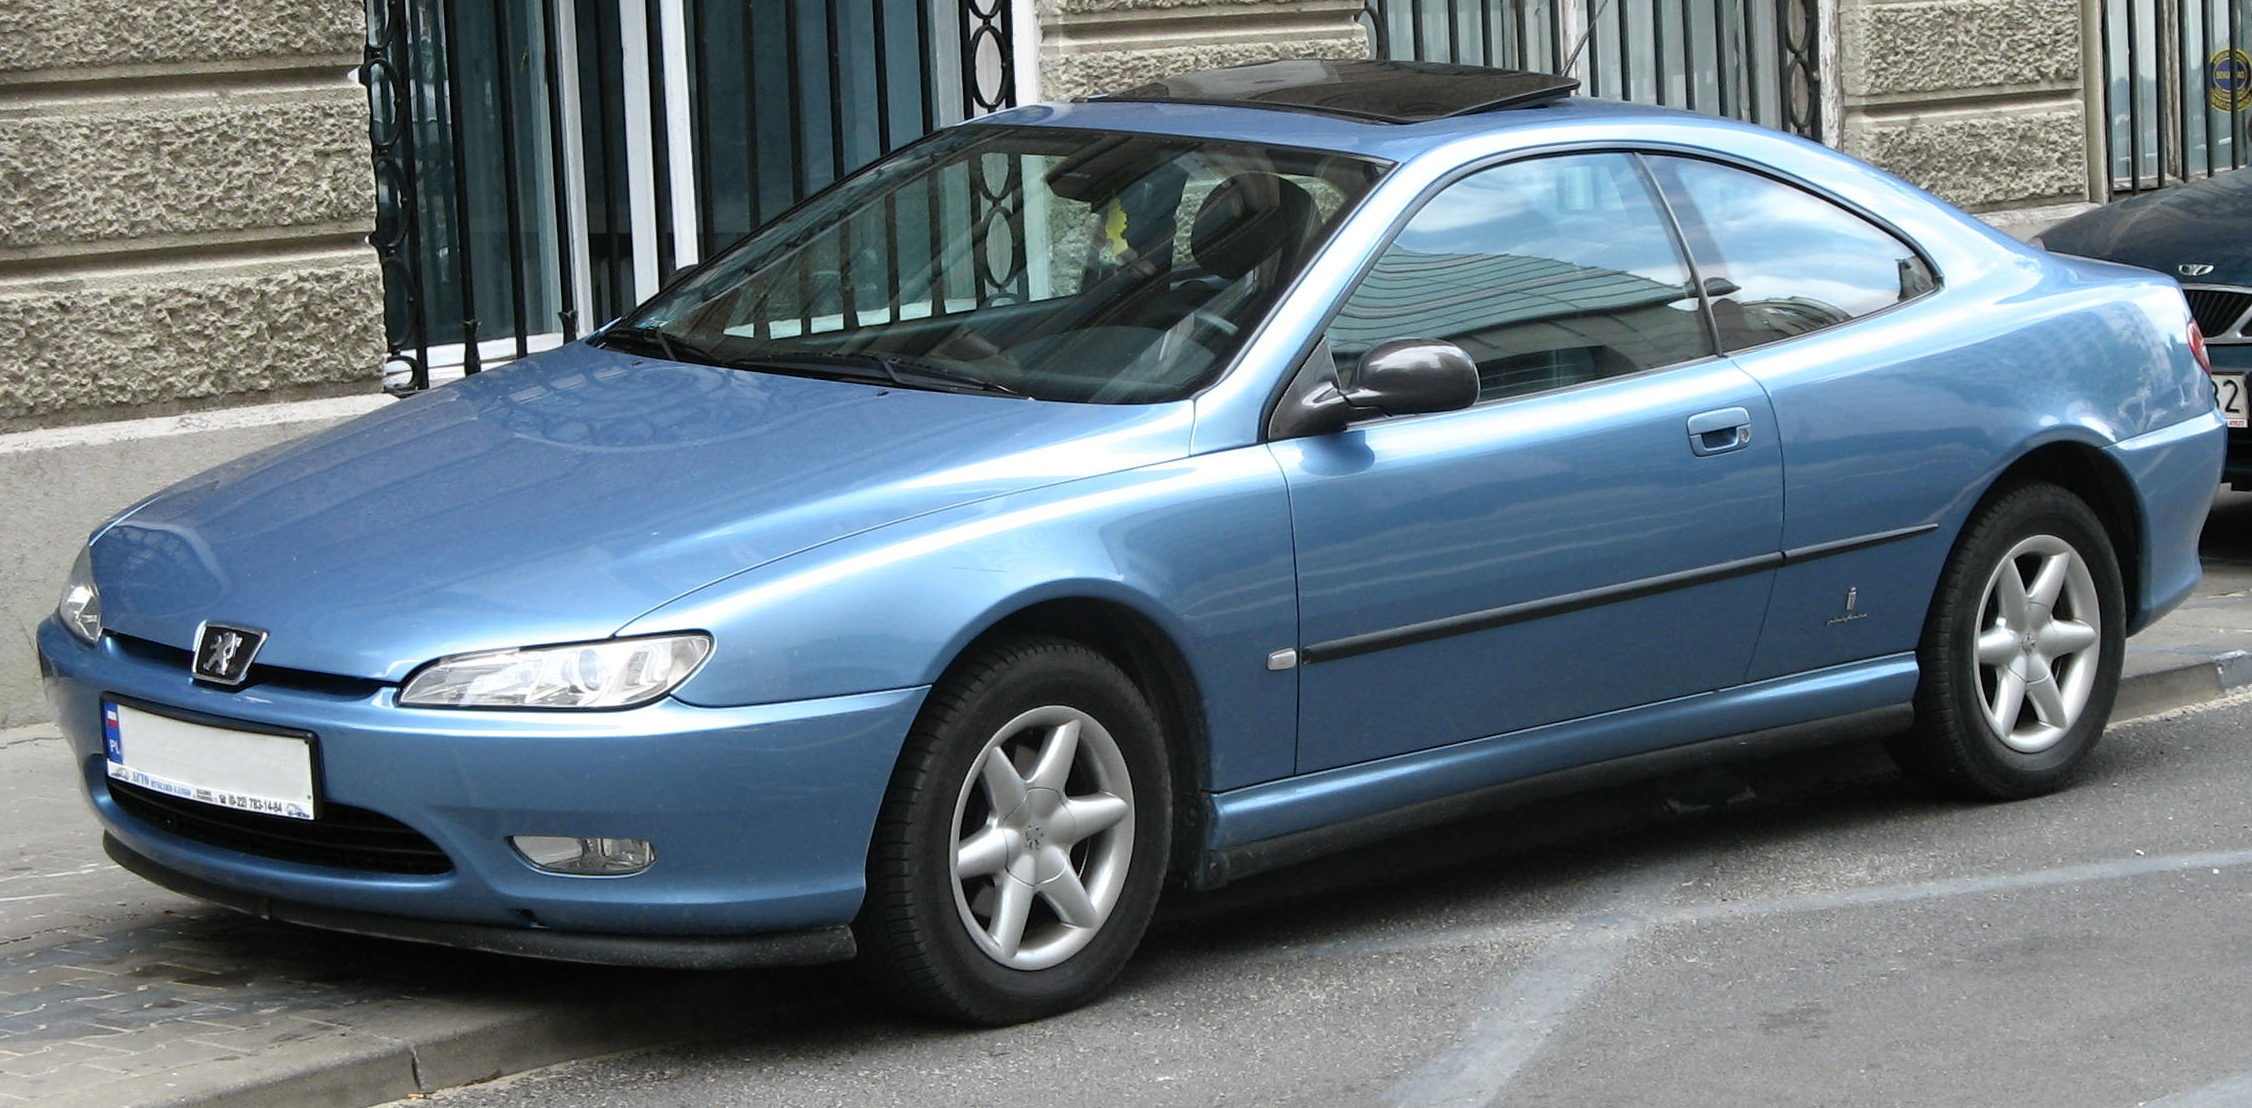 PEUGEOT 406 - Review and photos